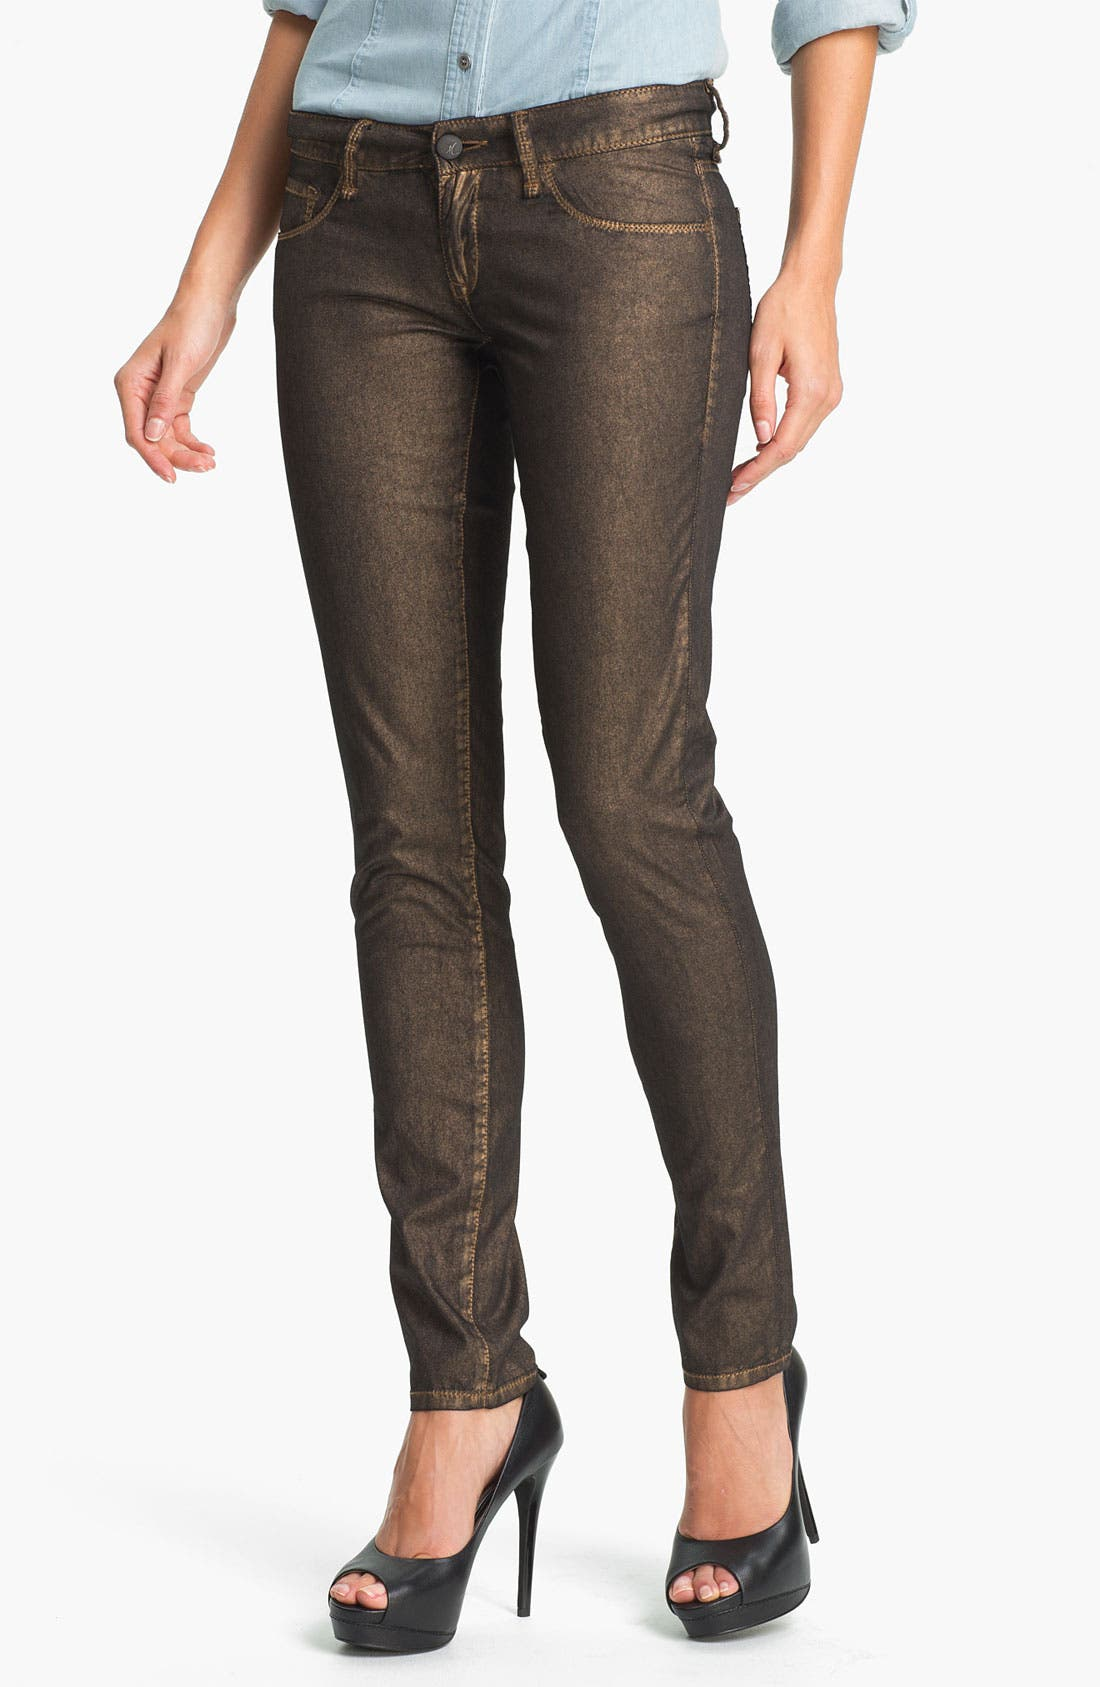 Alternate Image 1 Selected - Mavi Jeans 'Serena' Metallic Coated Skinny Jeans (Online Exclusive)